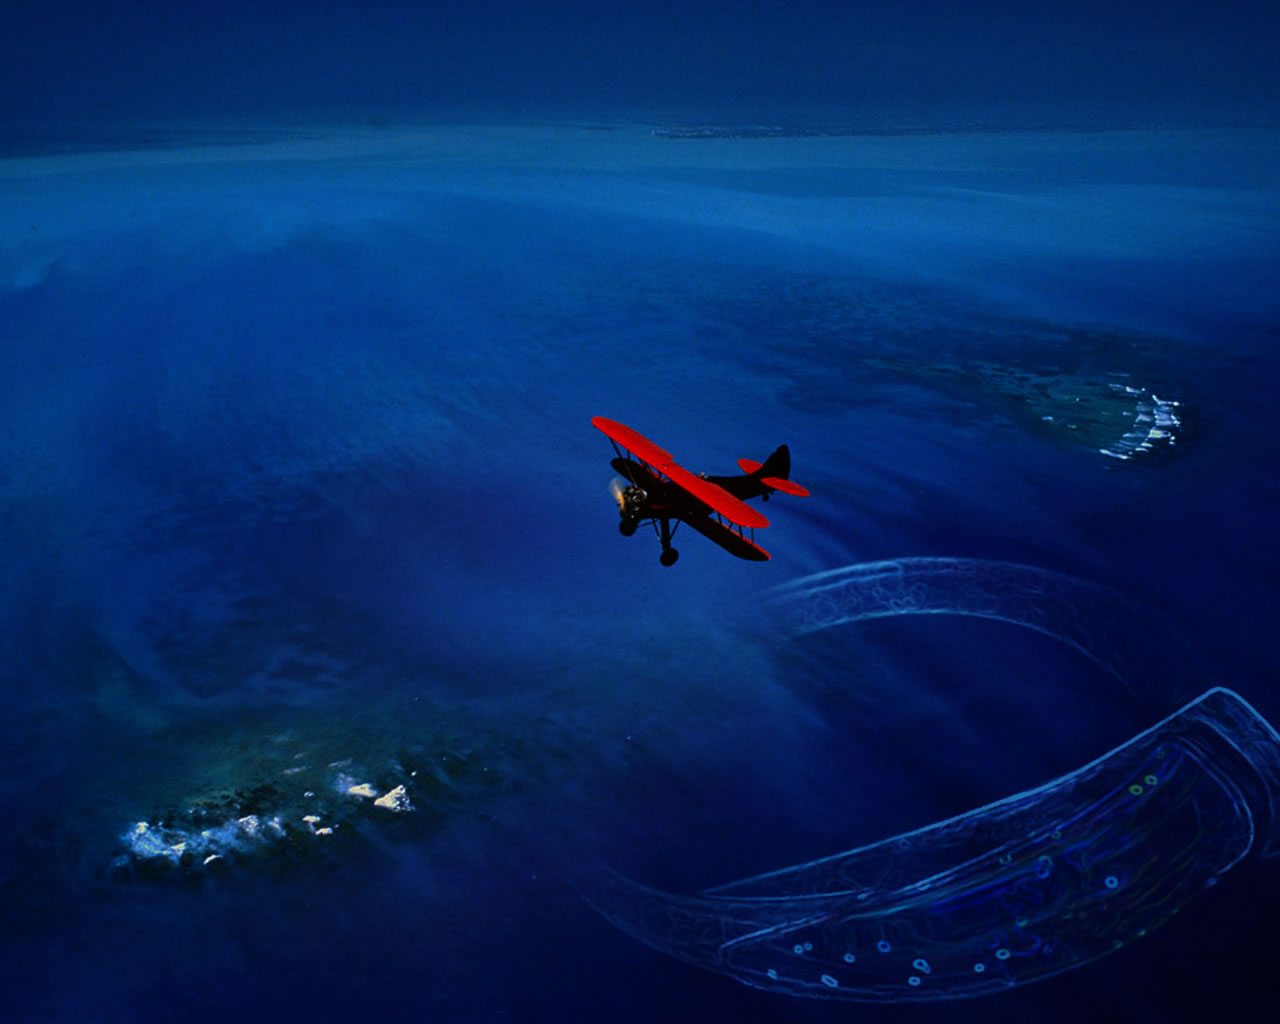 Red Biplane Over The Deep Blue Sea